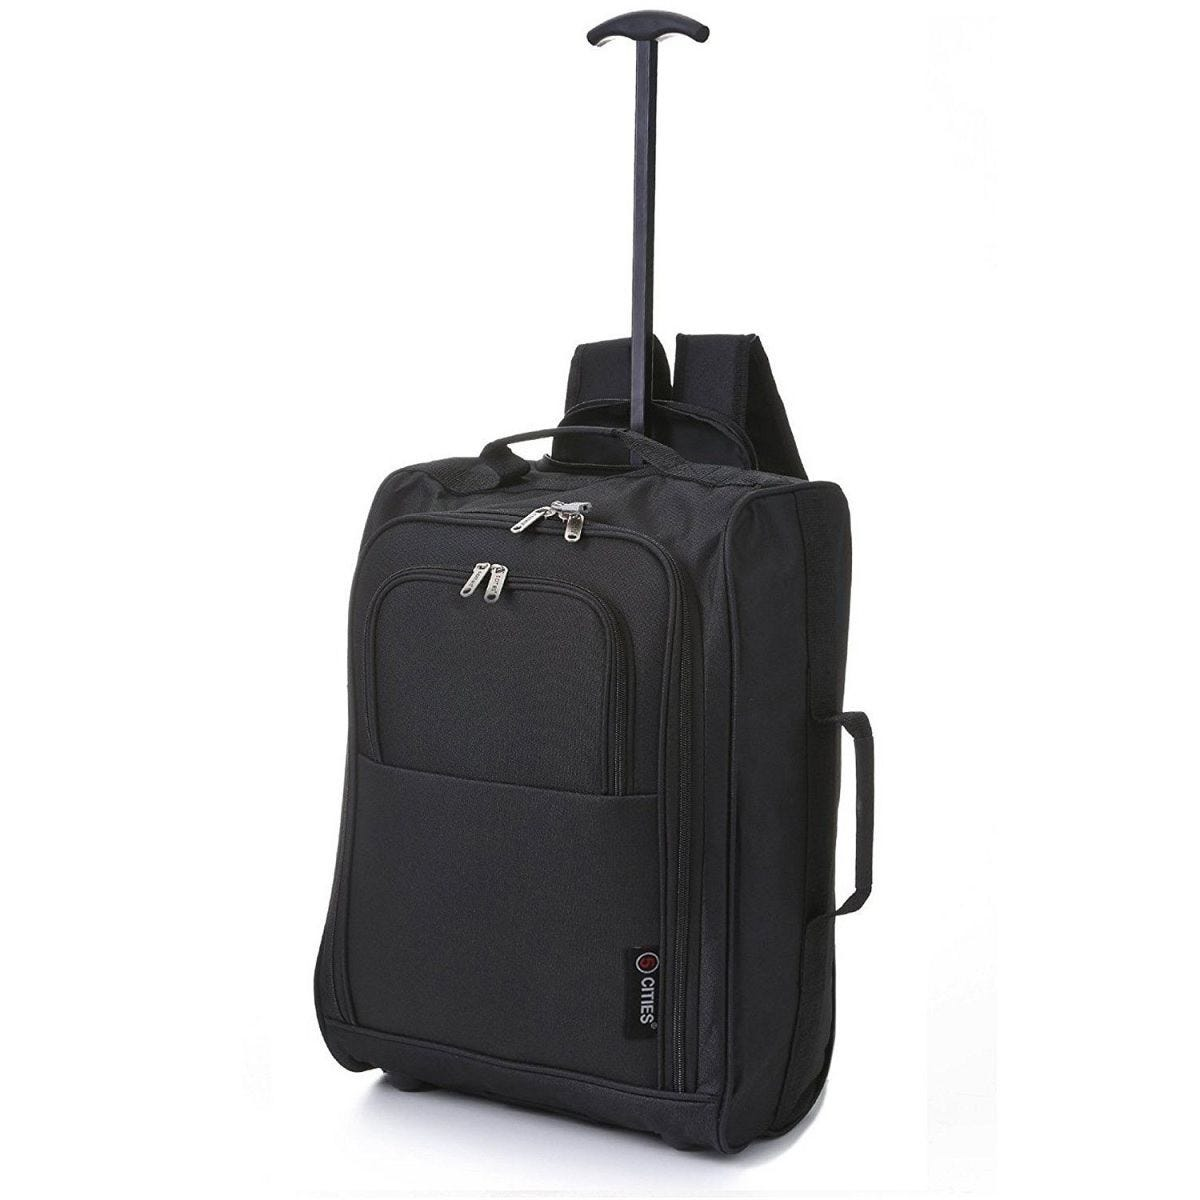 5Cities Cabin Trolley Backpack - Black